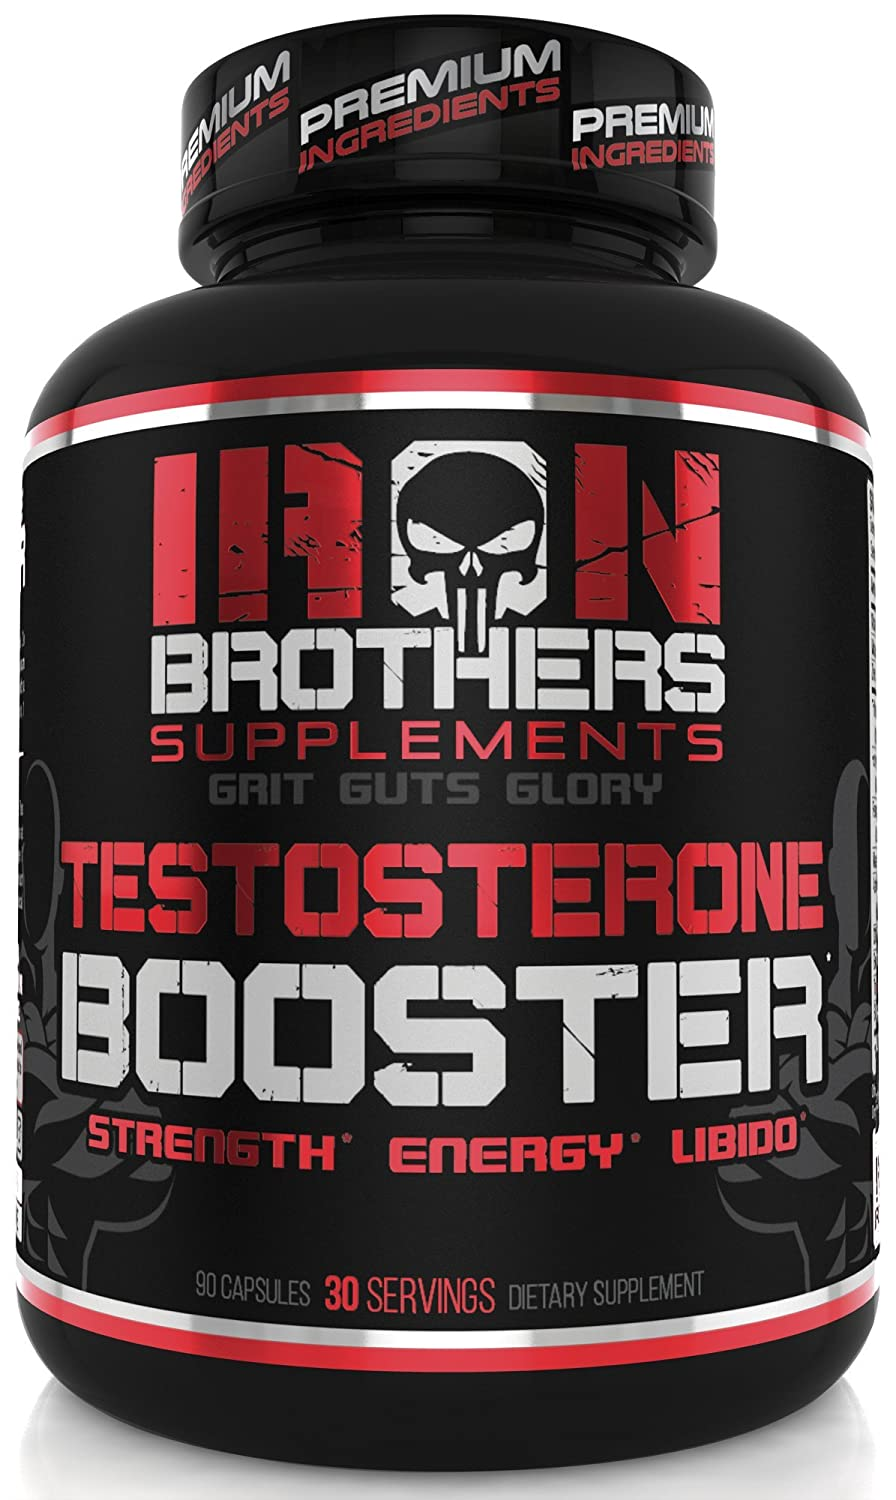 Testosterone Booster for Men Supplement for Natural Energy, Strength, Libido & Stamina - Lean Muscle Growth - Promotes Fat Loss - Increase Male Performance & Vitality- Build Mass - 90 Veggie Caps